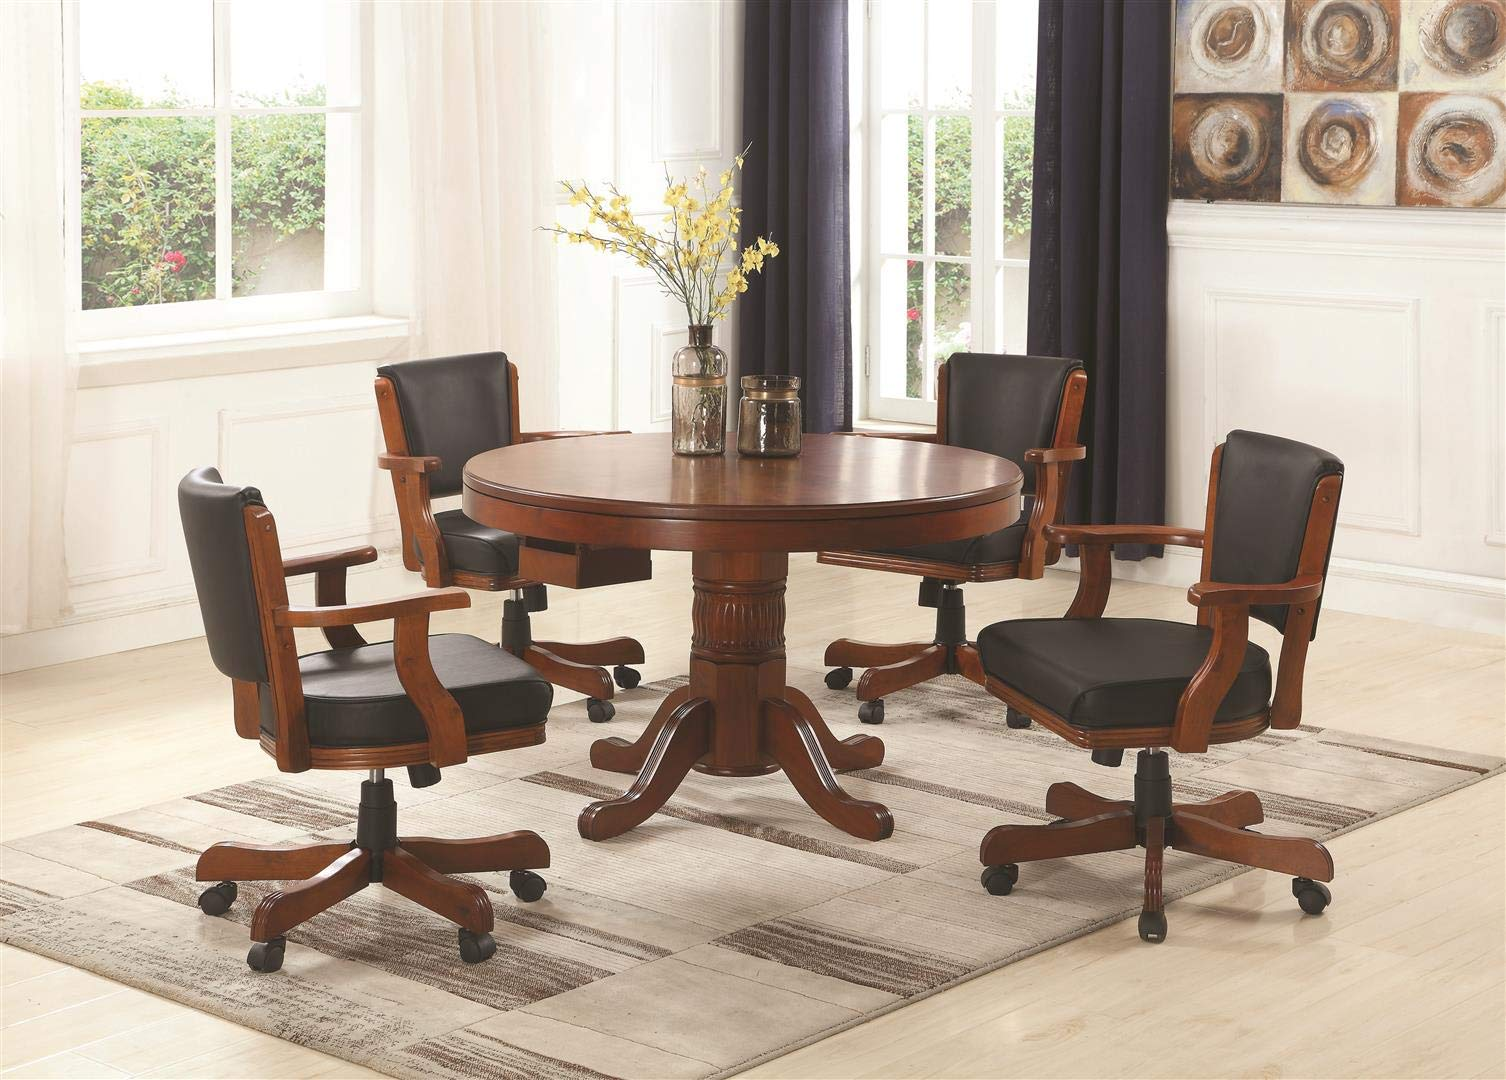 Coaster Home Furnishings Mitchell 5-Piece Game Table Dining Set Merlot and Black by Coaster Home Furnishings